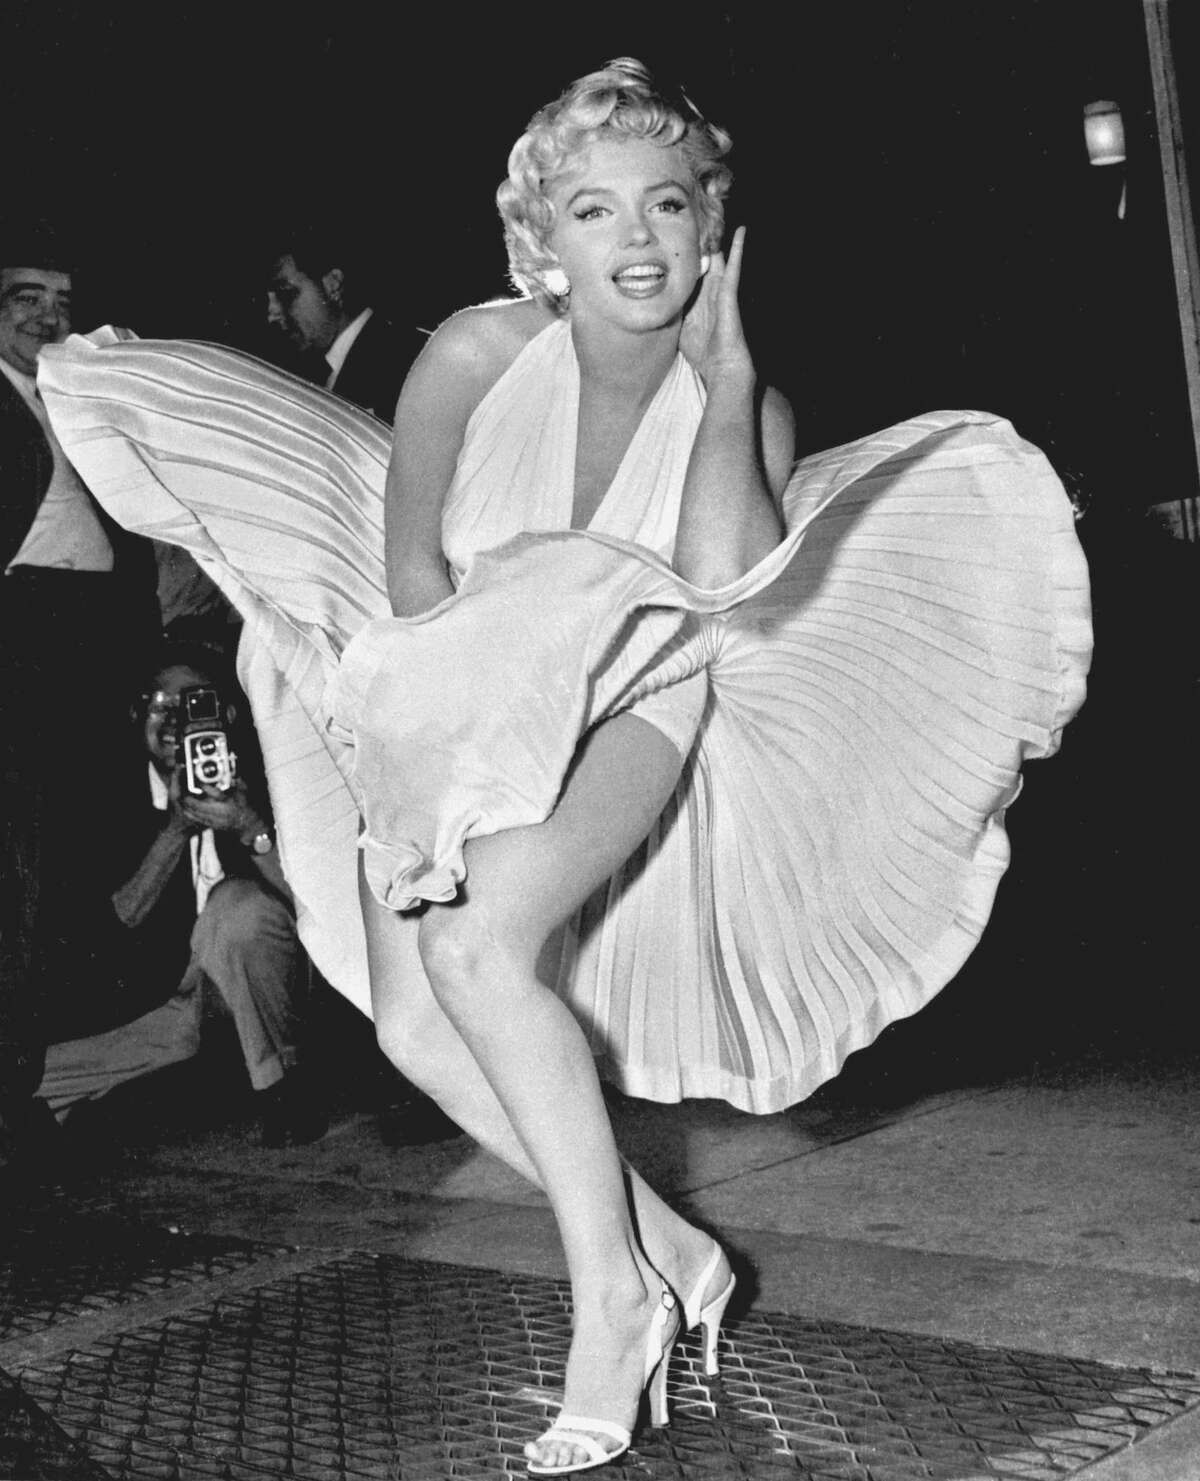 In this Sept. 9, 1954, file photo, Marilyn Monroe poses over the updraft of New York subway grating while in character for the filming of